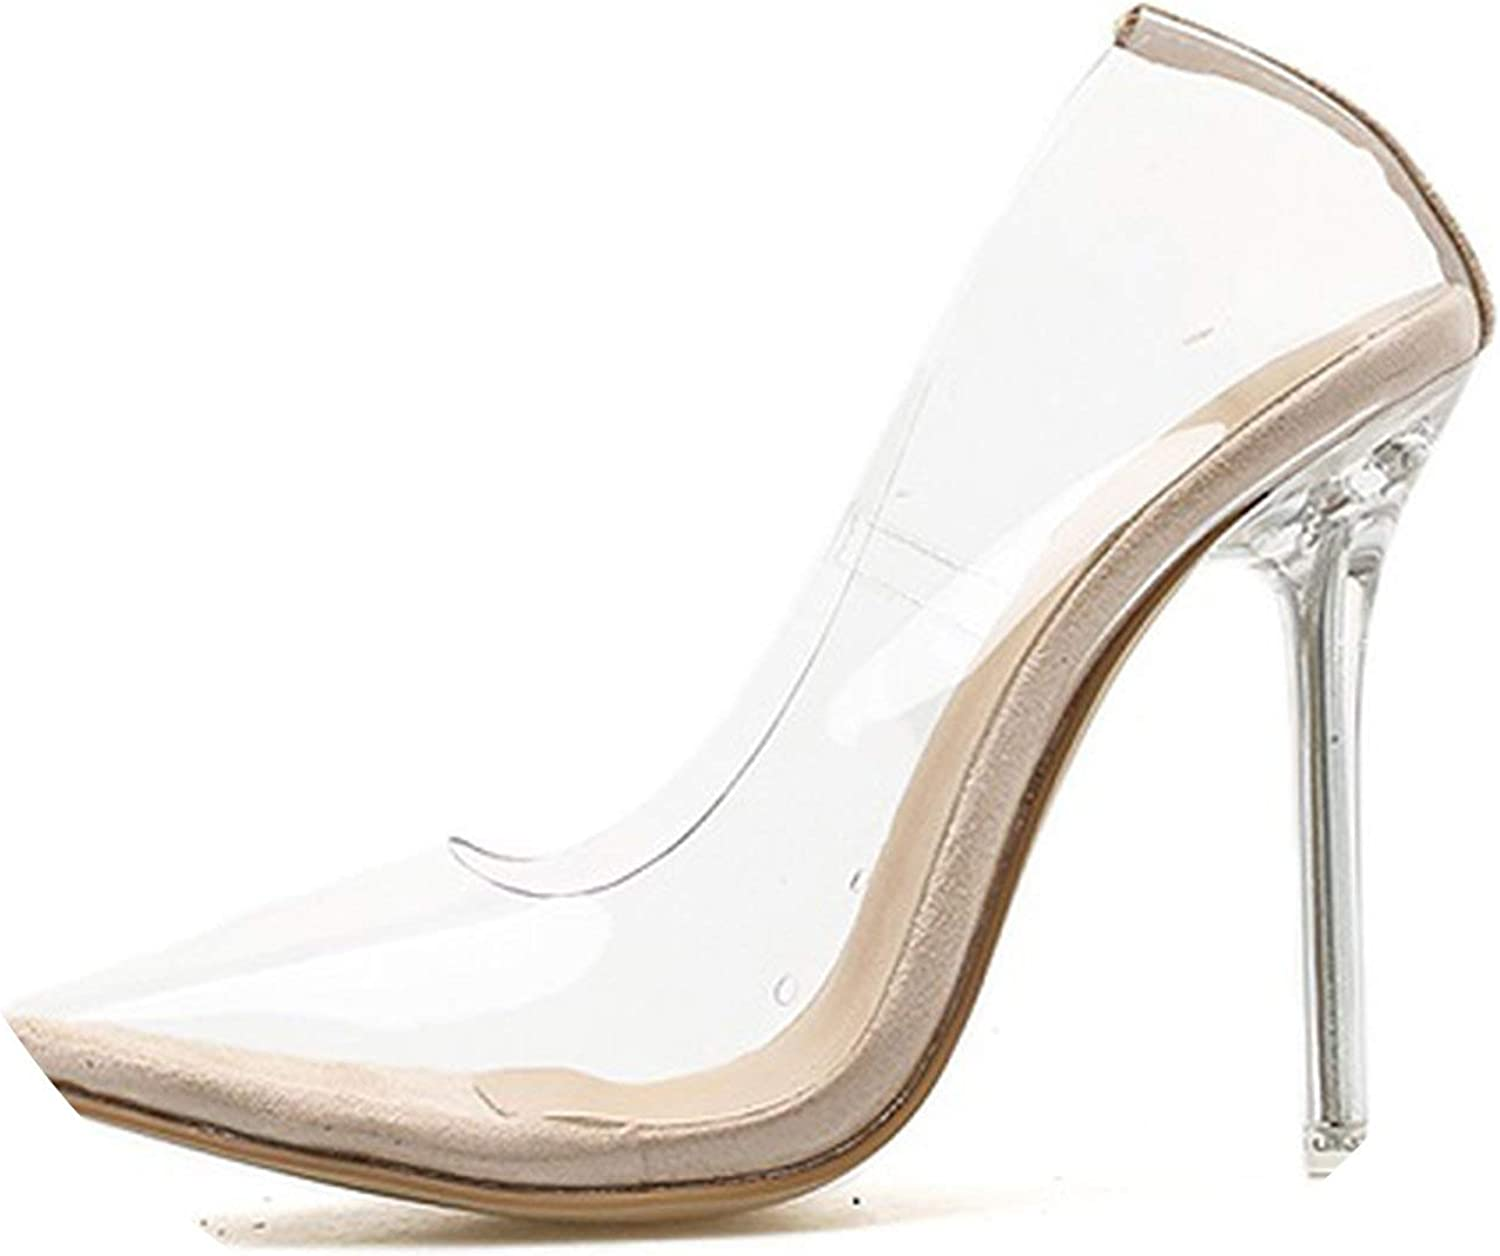 HANBINGPO Clear PVC Transparent Pumps Sandals Perspex Heel Stilettos High Heels Point Toes Womens Party shoes Nightclub Pump 35-42,Apricot,8